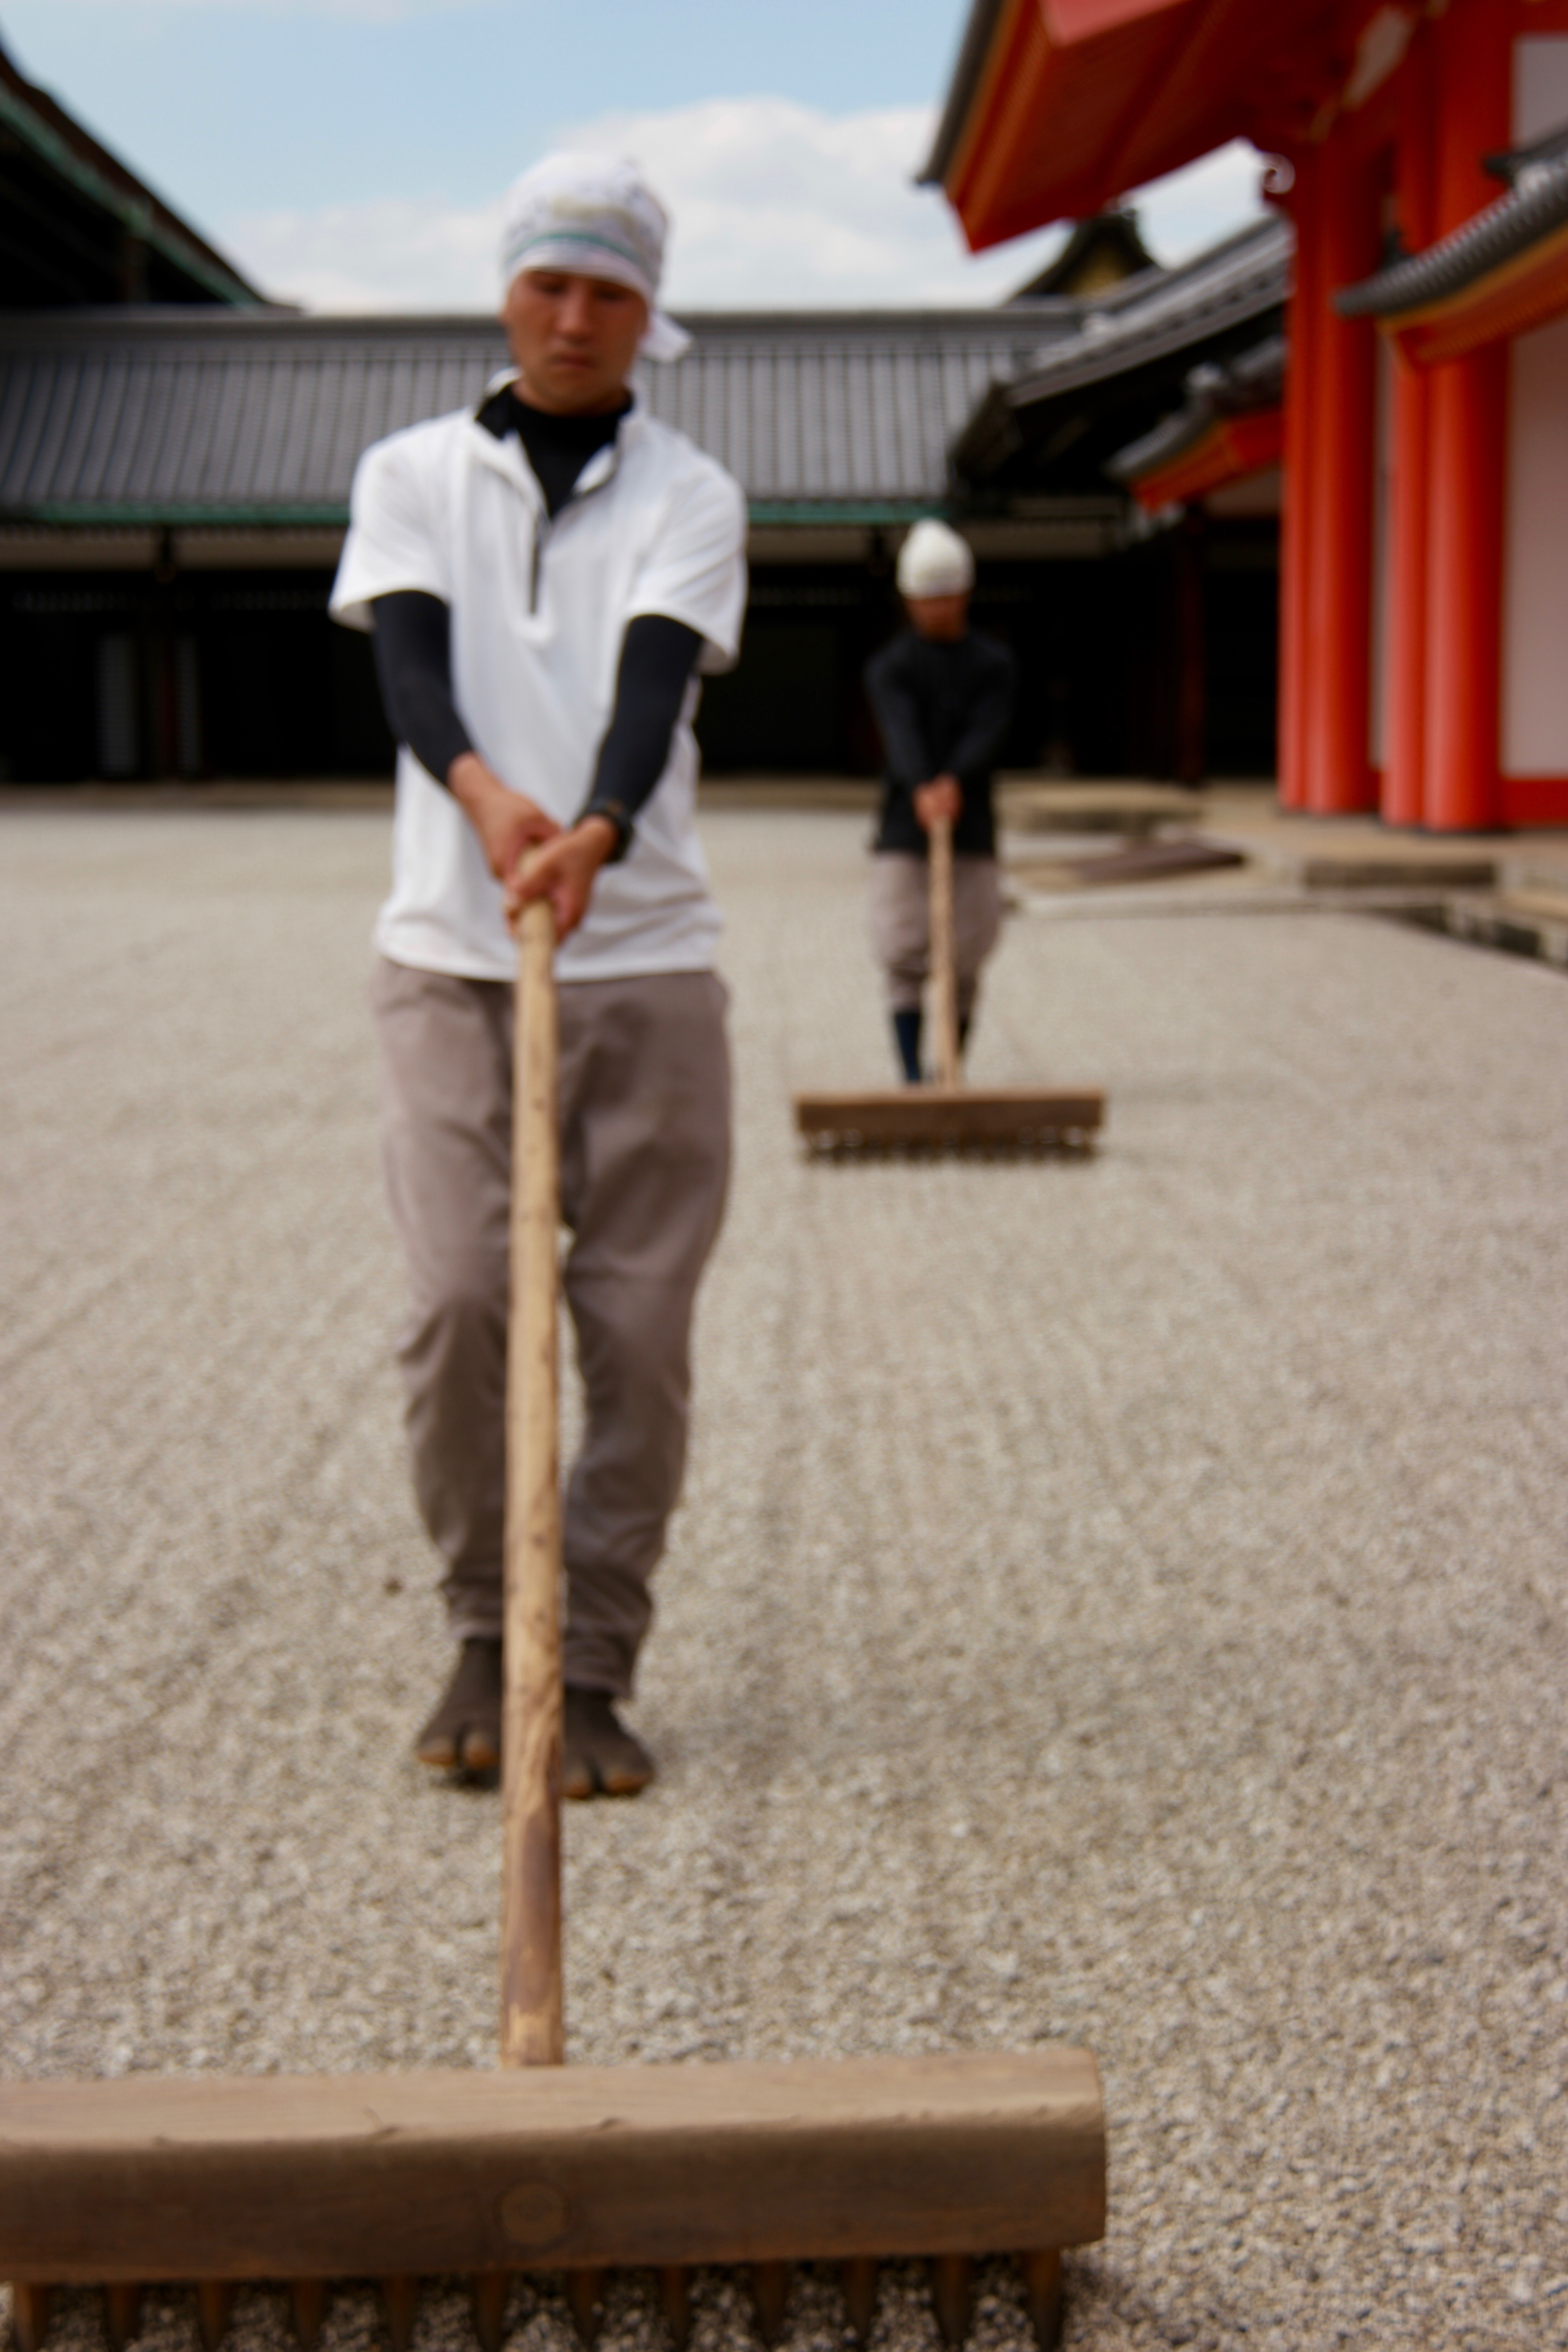 Two Asian men sweeping at their temple's courtyard.